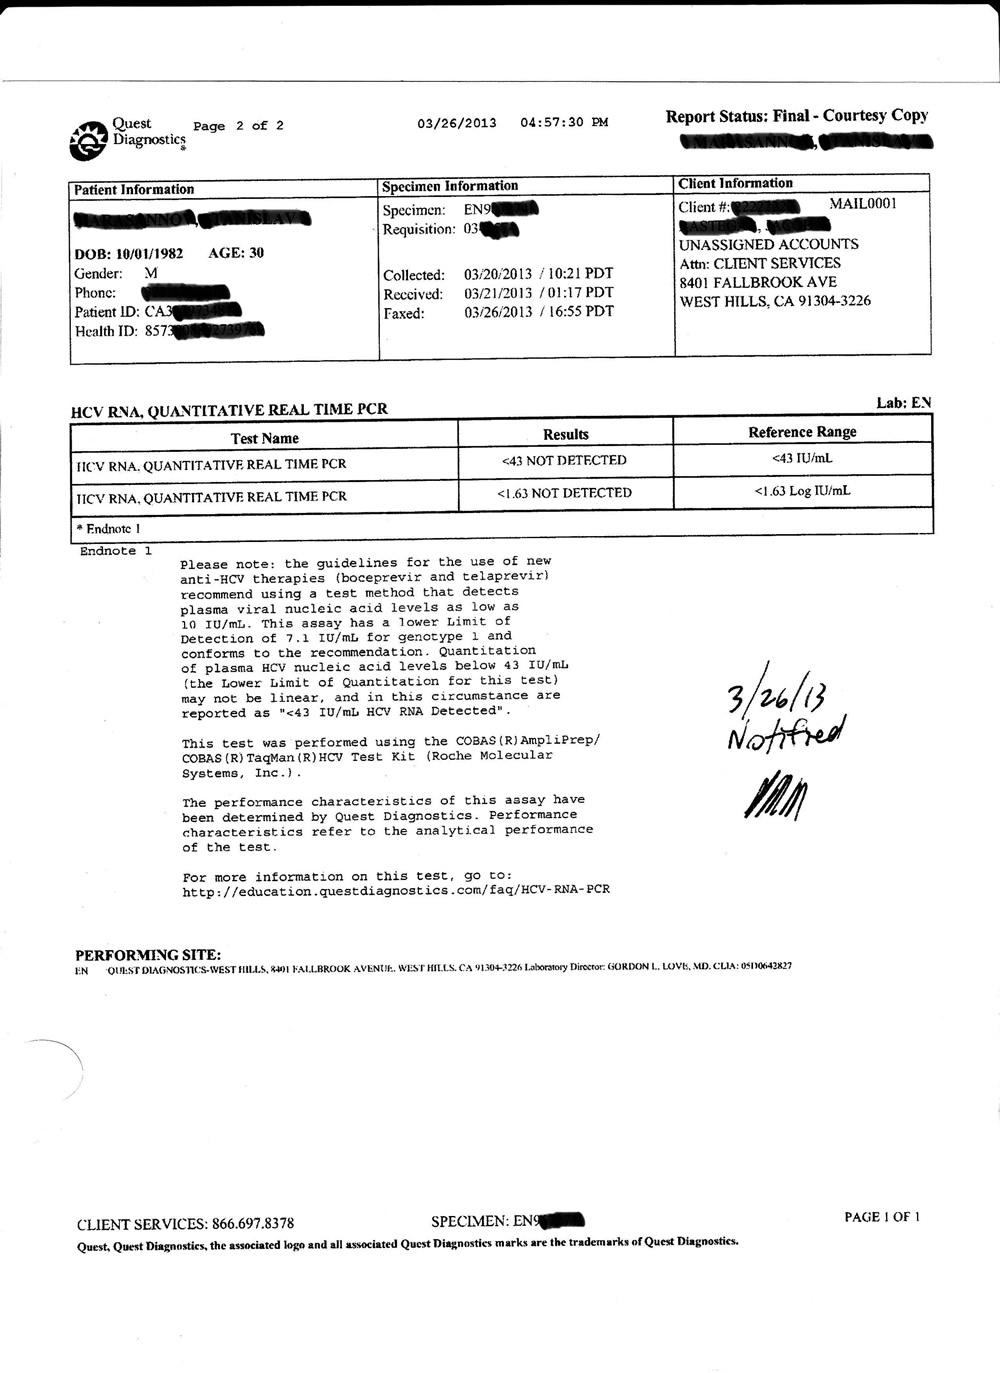 Hepatitis C undetected blood work page 1